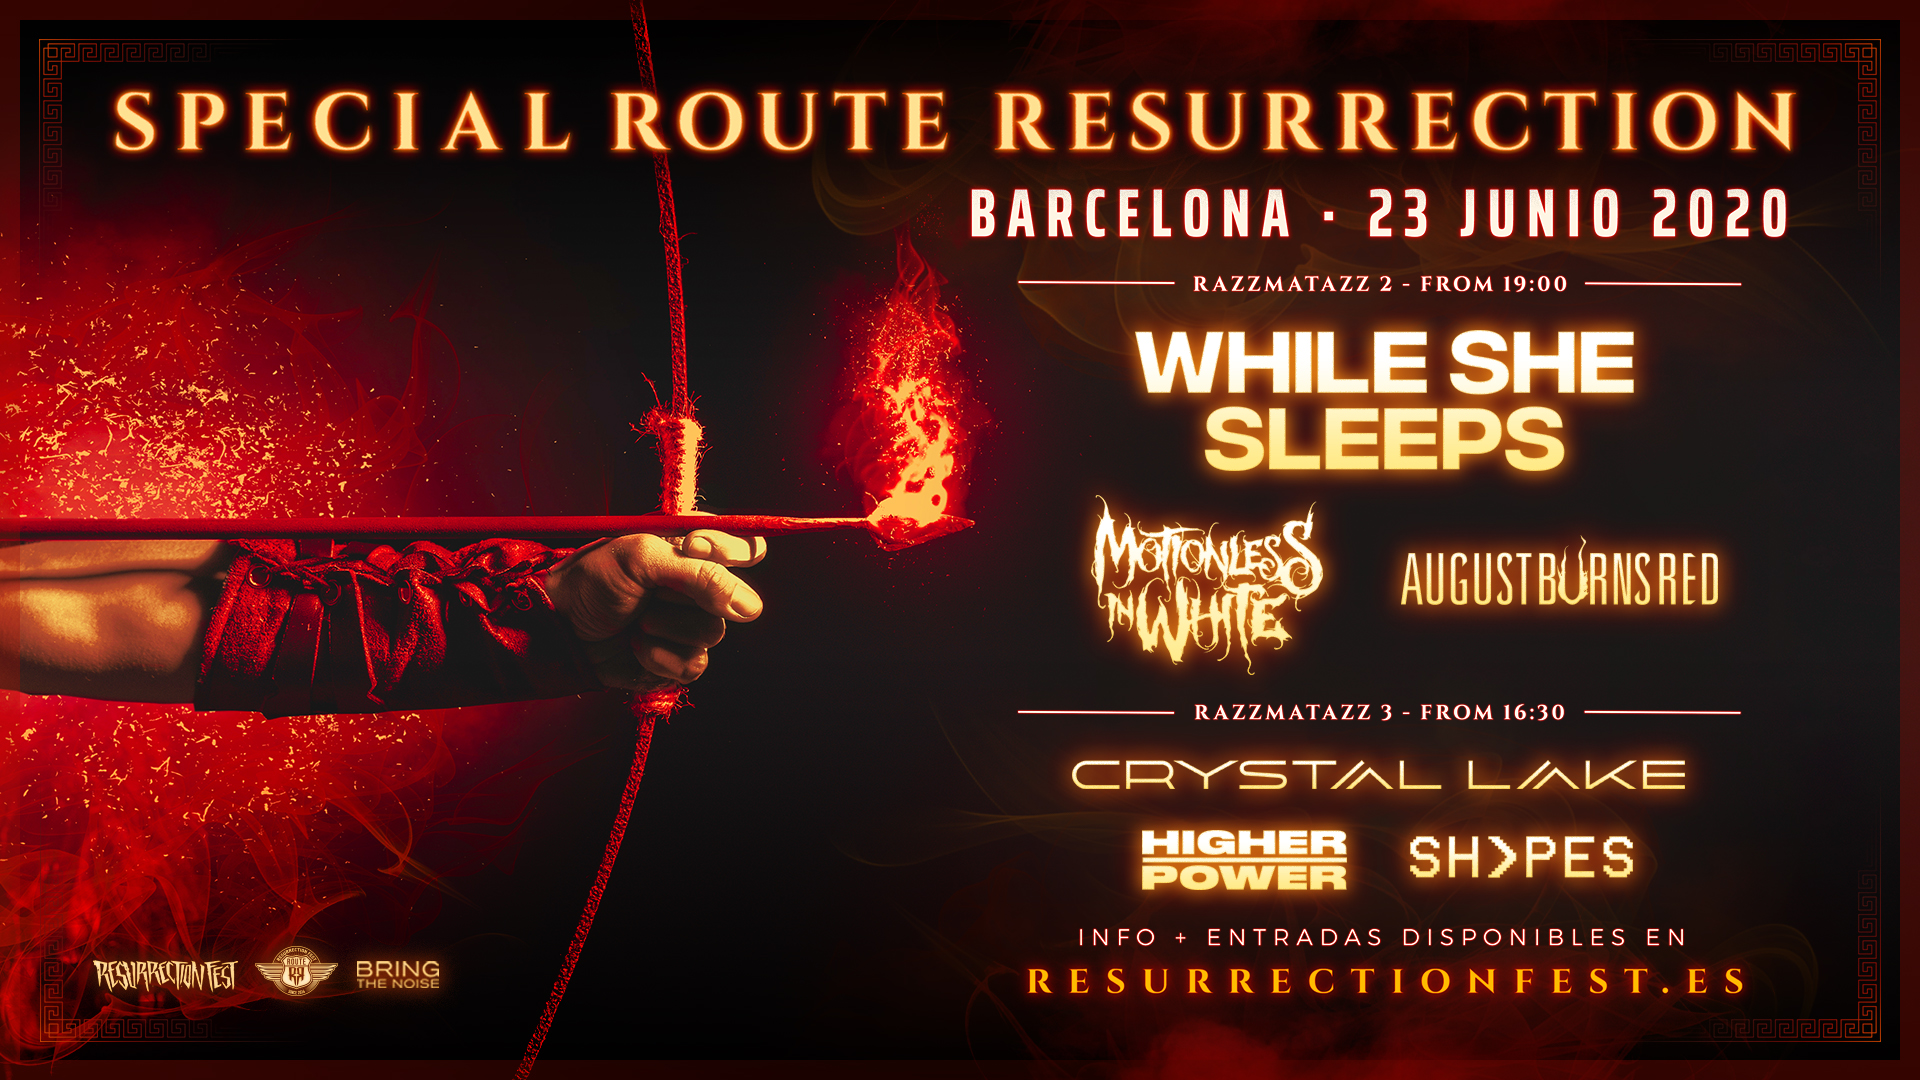 Route Resurrection Fest 2020 - Special Route Resurrection - Event